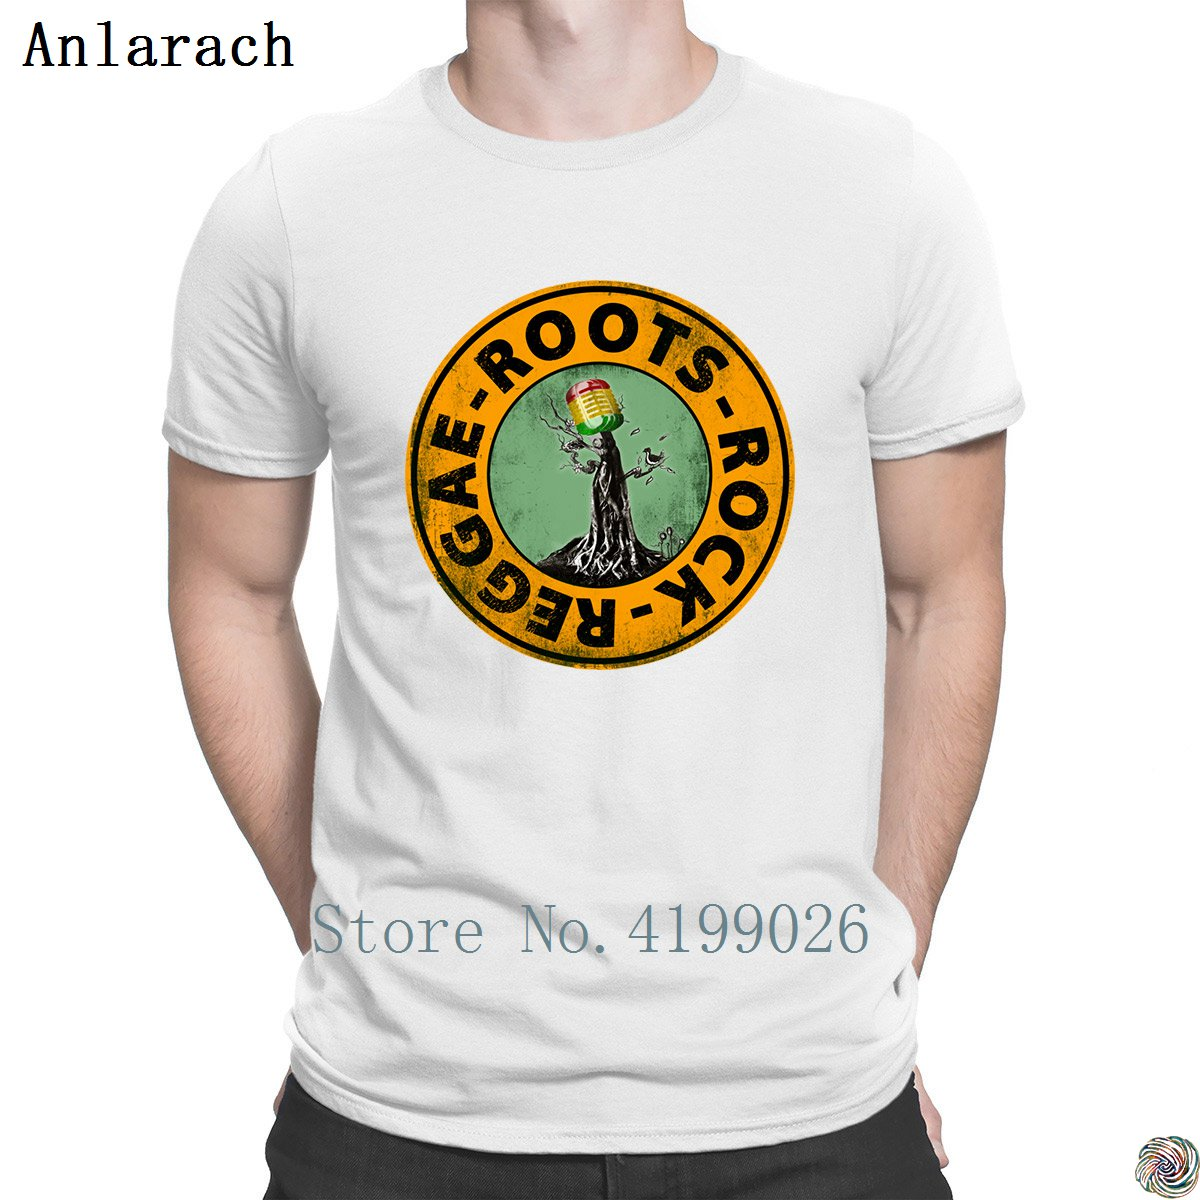 Image 3 - Roots Rock Reggae. t shirts Euro Size Pop Top Tee Basic Solid men's tshirt Designing High quality summer Anlarach New Style-in T-Shirts from Men's Clothing